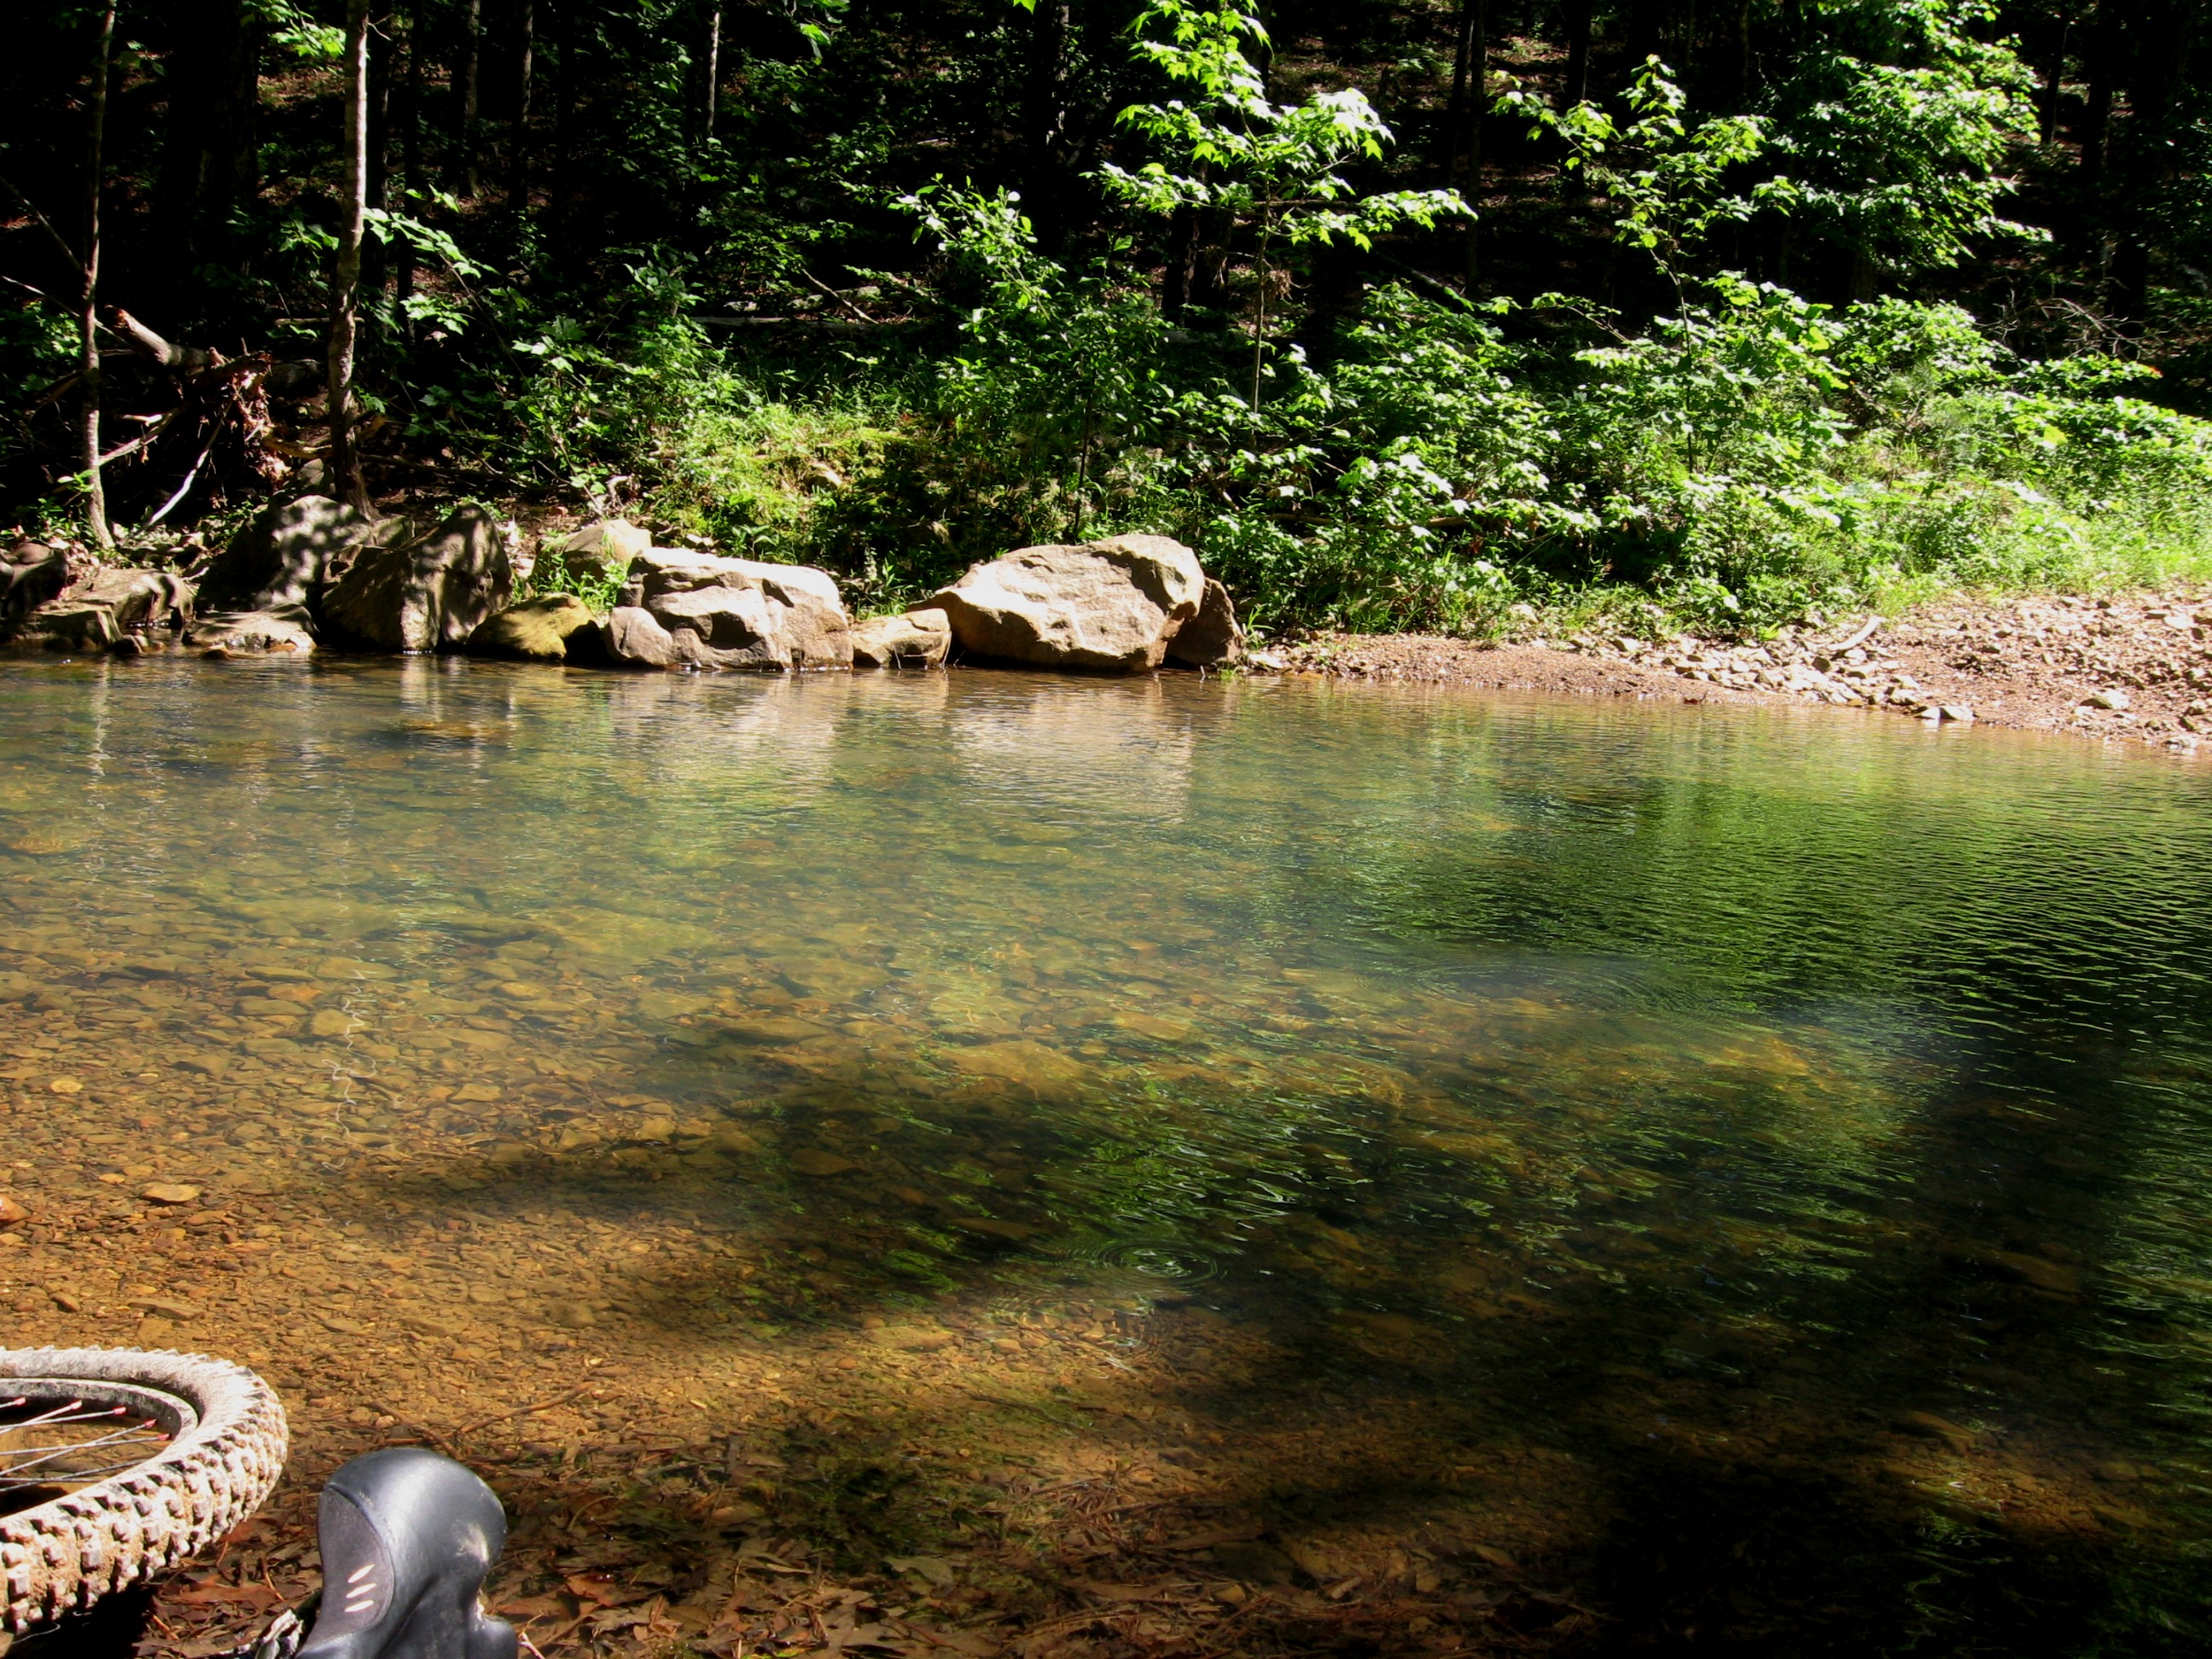 Remove shoes/socks, wade through thigh-deep creek, stop for a snack on the other side while feet dry off...